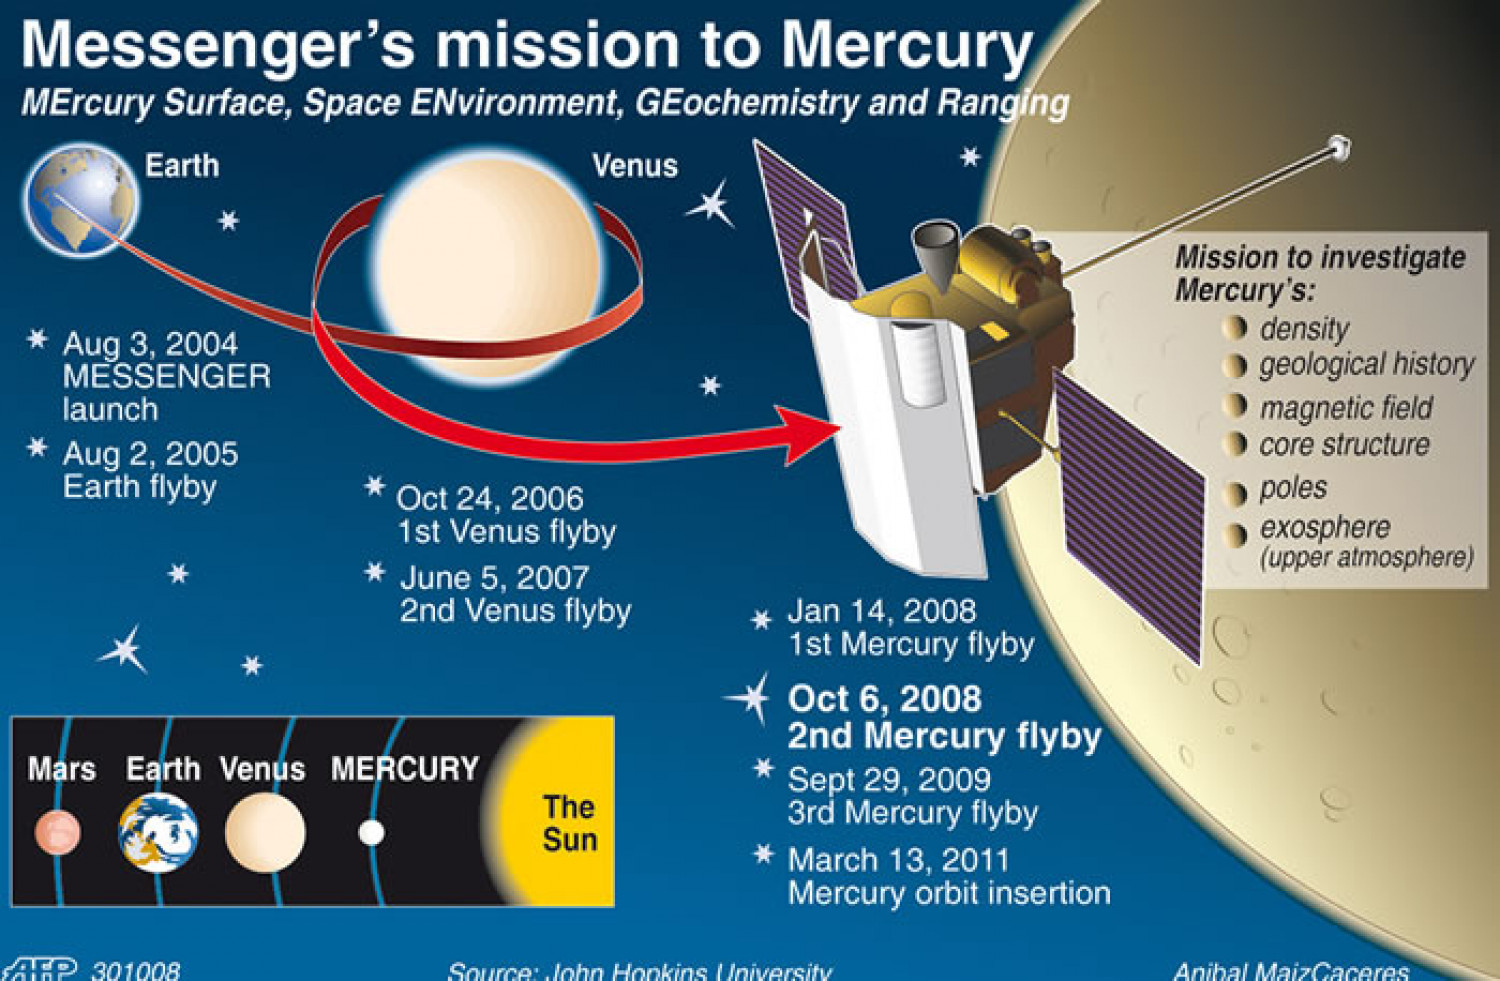 Messenger's mission to Mercury Infographic